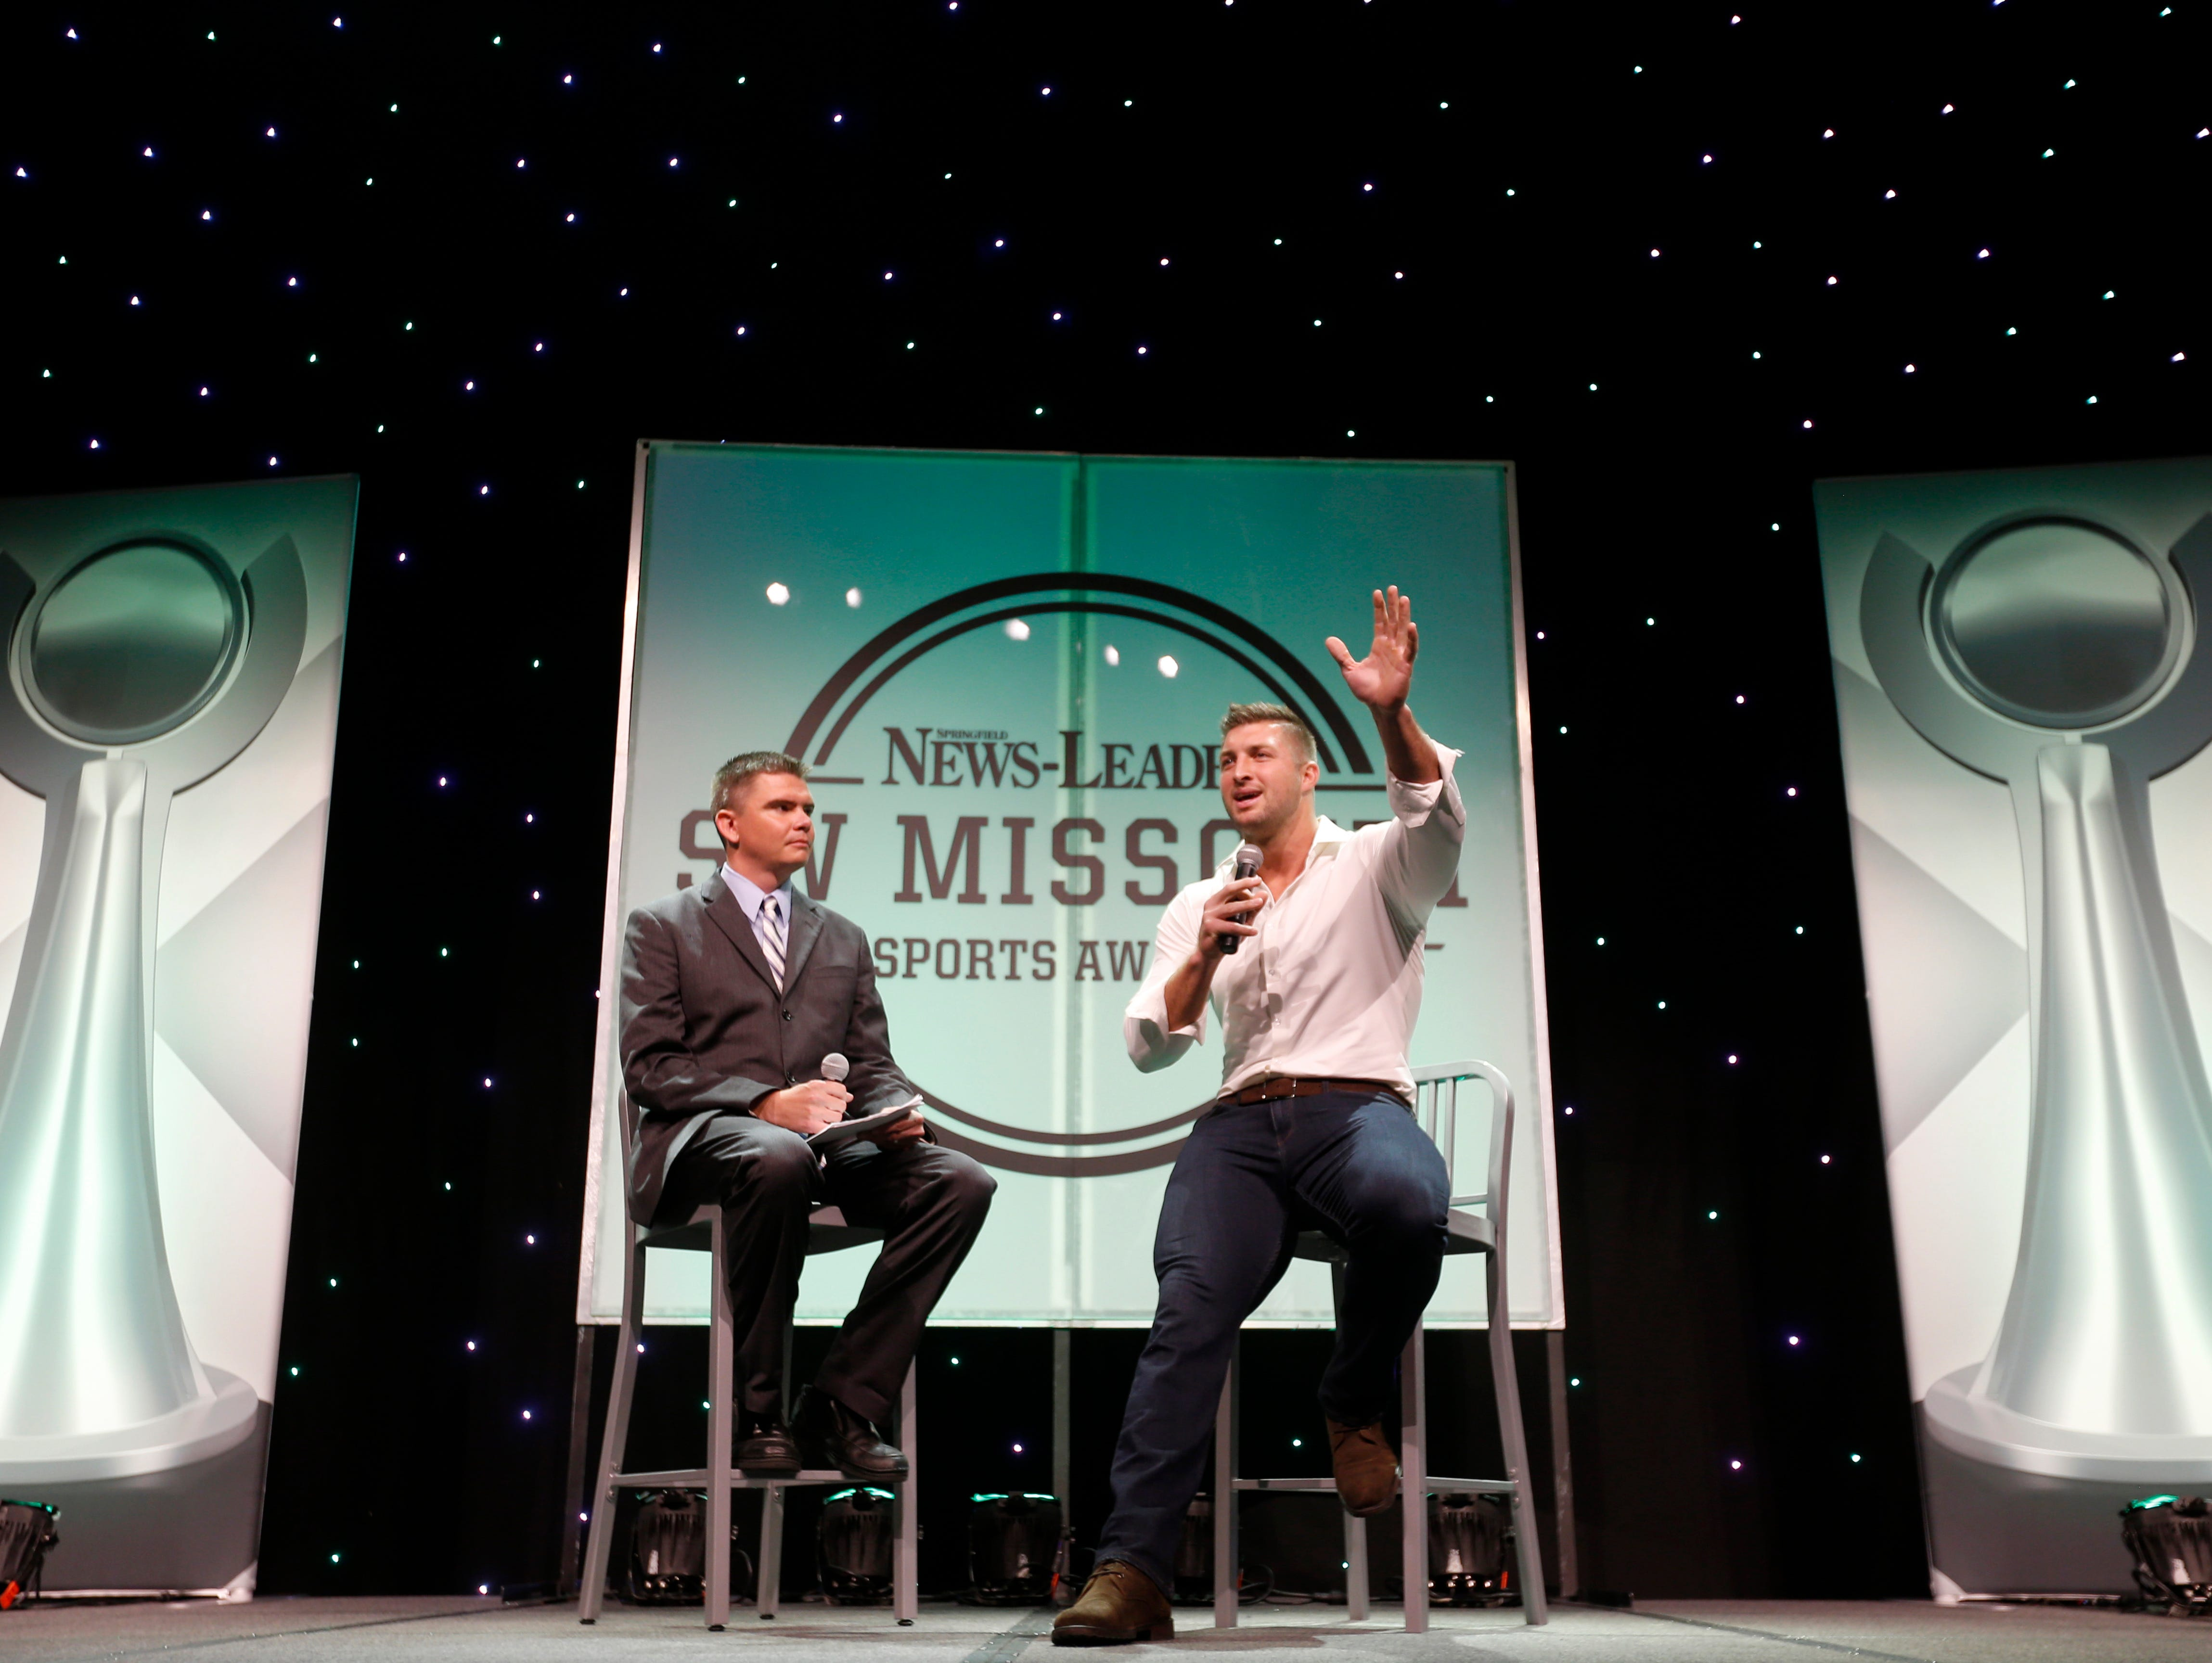 News-Leader prep sports reporter Rance Burger interviews Tim Tebow during the 2016 Southwest Missouri Sports Awards at the Springfield Expo Center on Thursday, June 9, 2016.